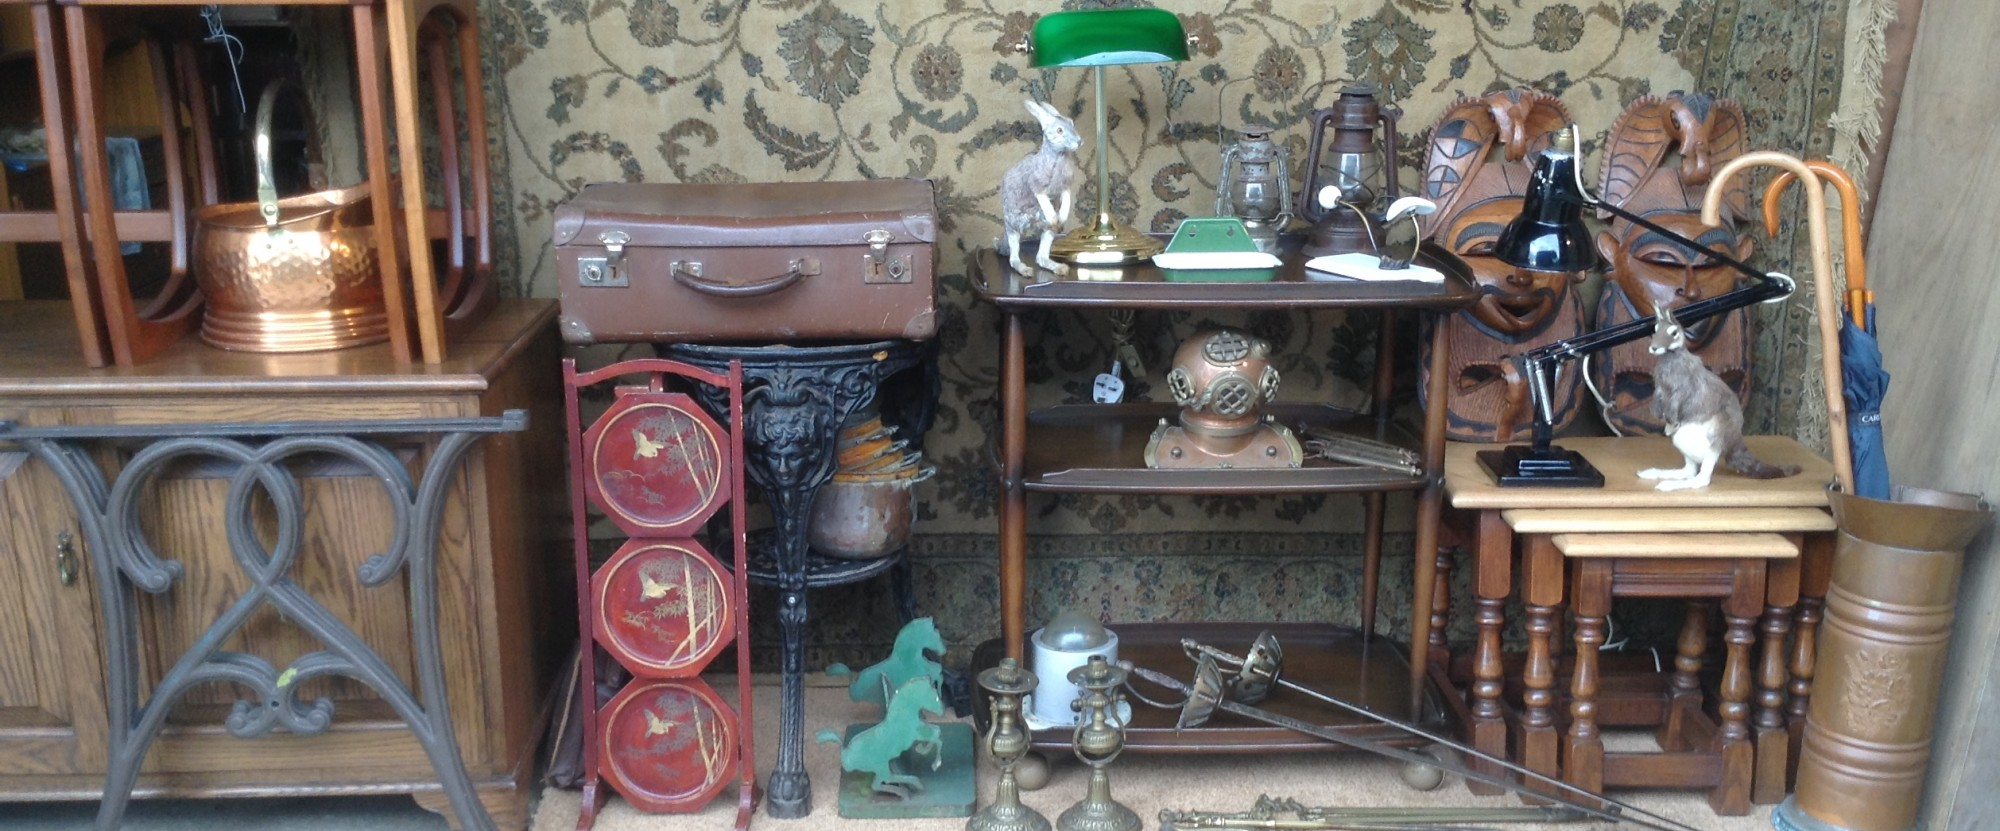 Charming ITEMS FOR SALE   JUDLINGTONS HOUSE CLEARANCE ~ In Maldon, Tiptree, Witham,  Colchester, Chelmsford U0026 Essex